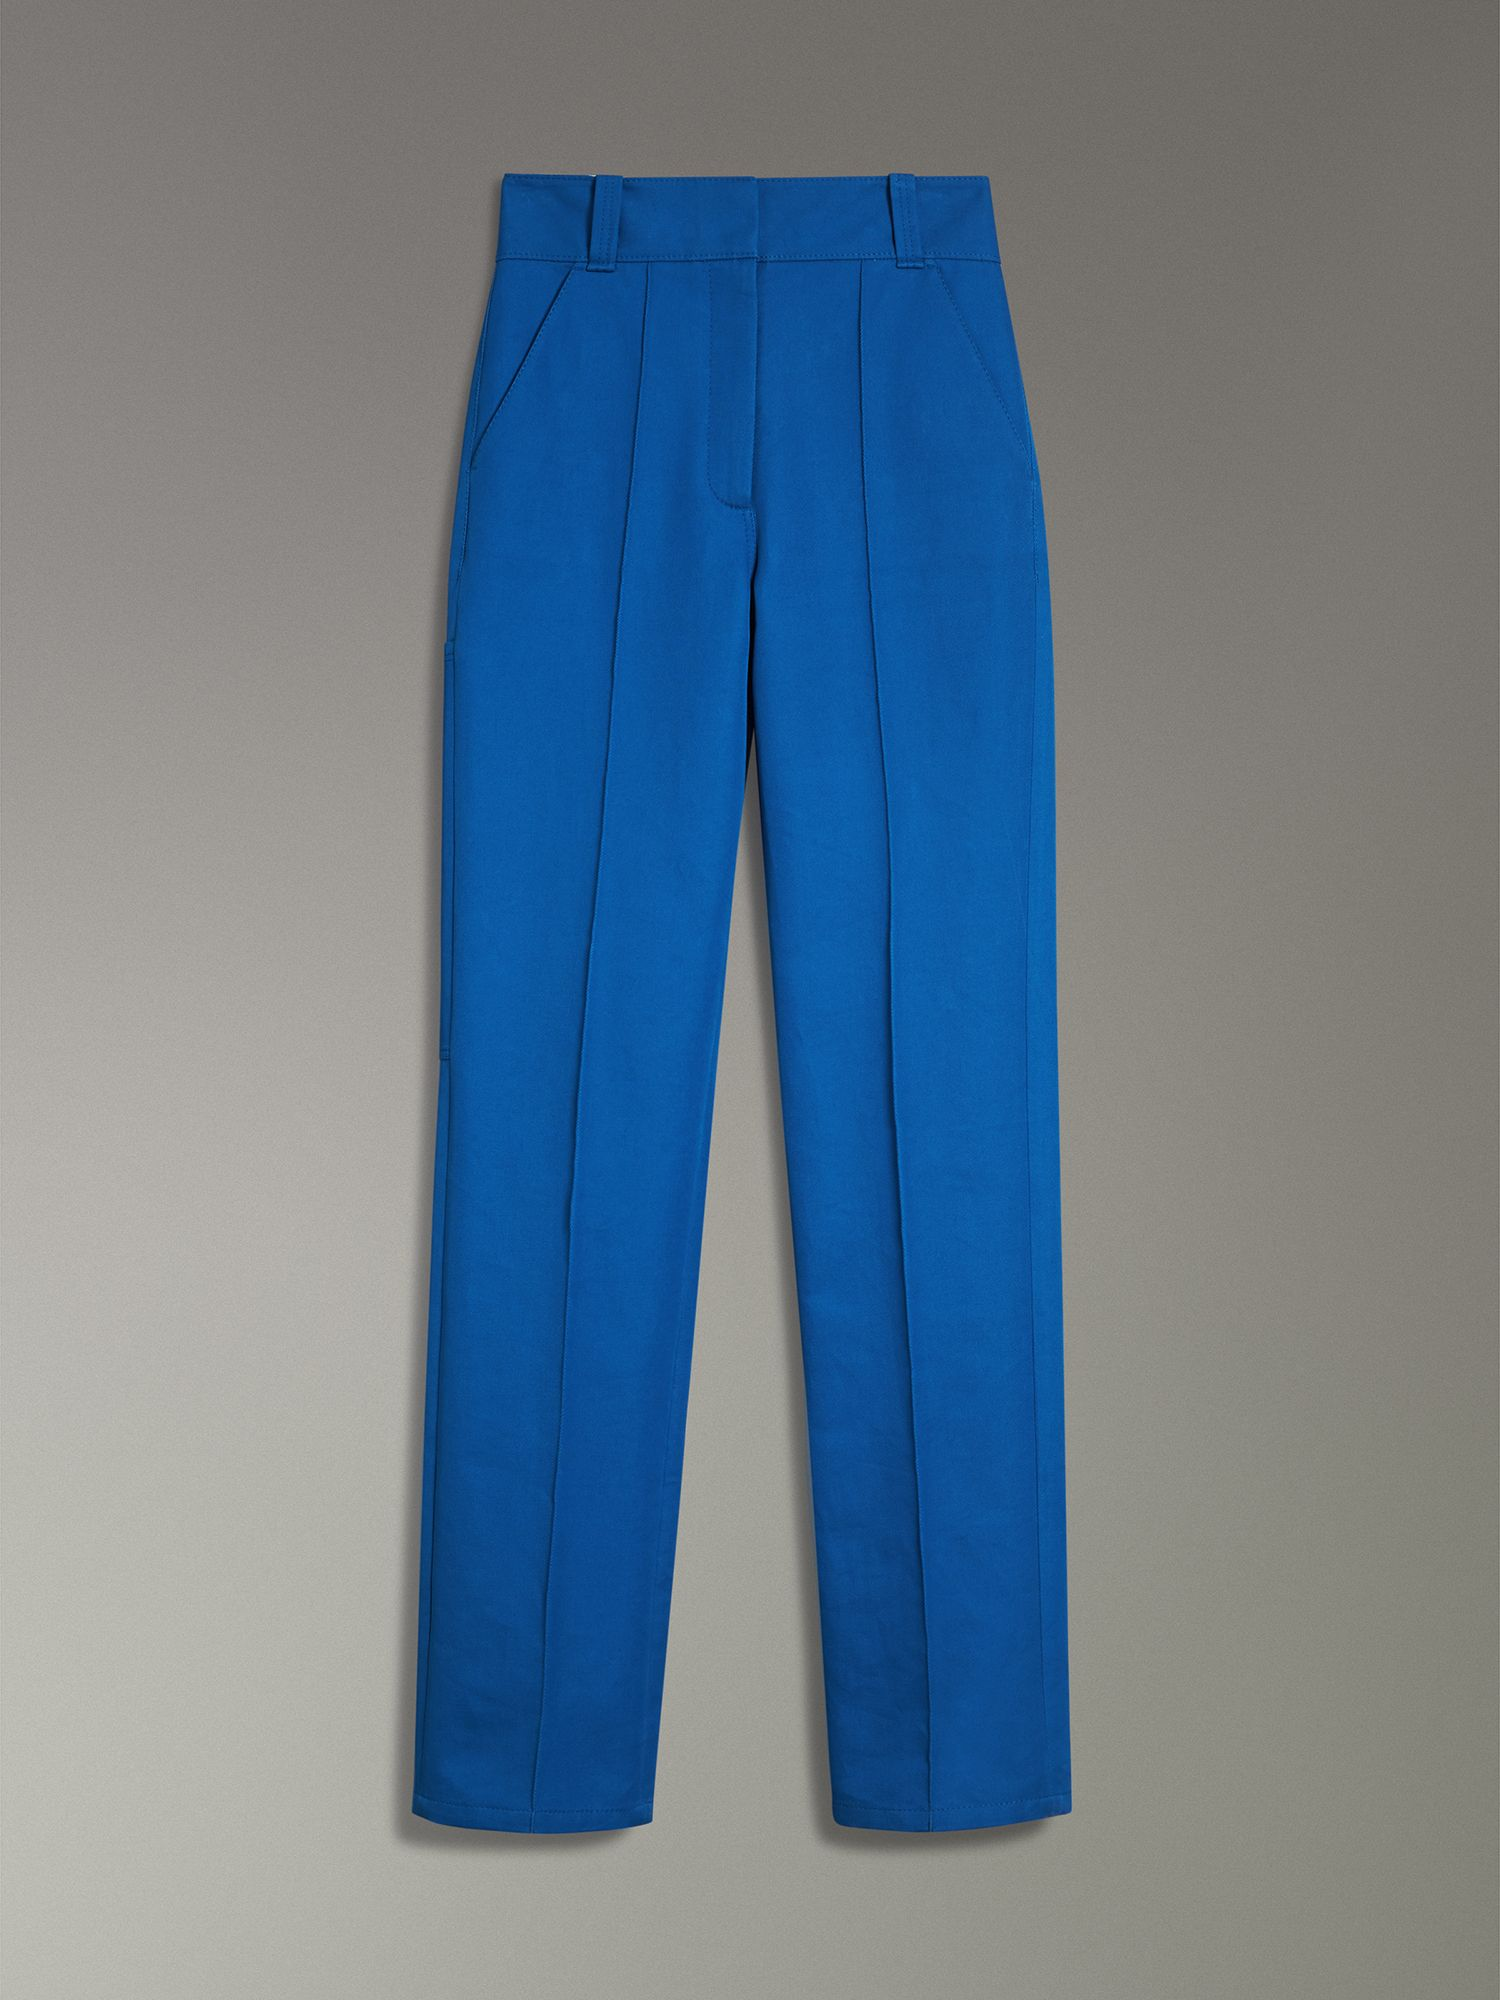 Cotton Drill High-waisted Trousers in Canvas Blue